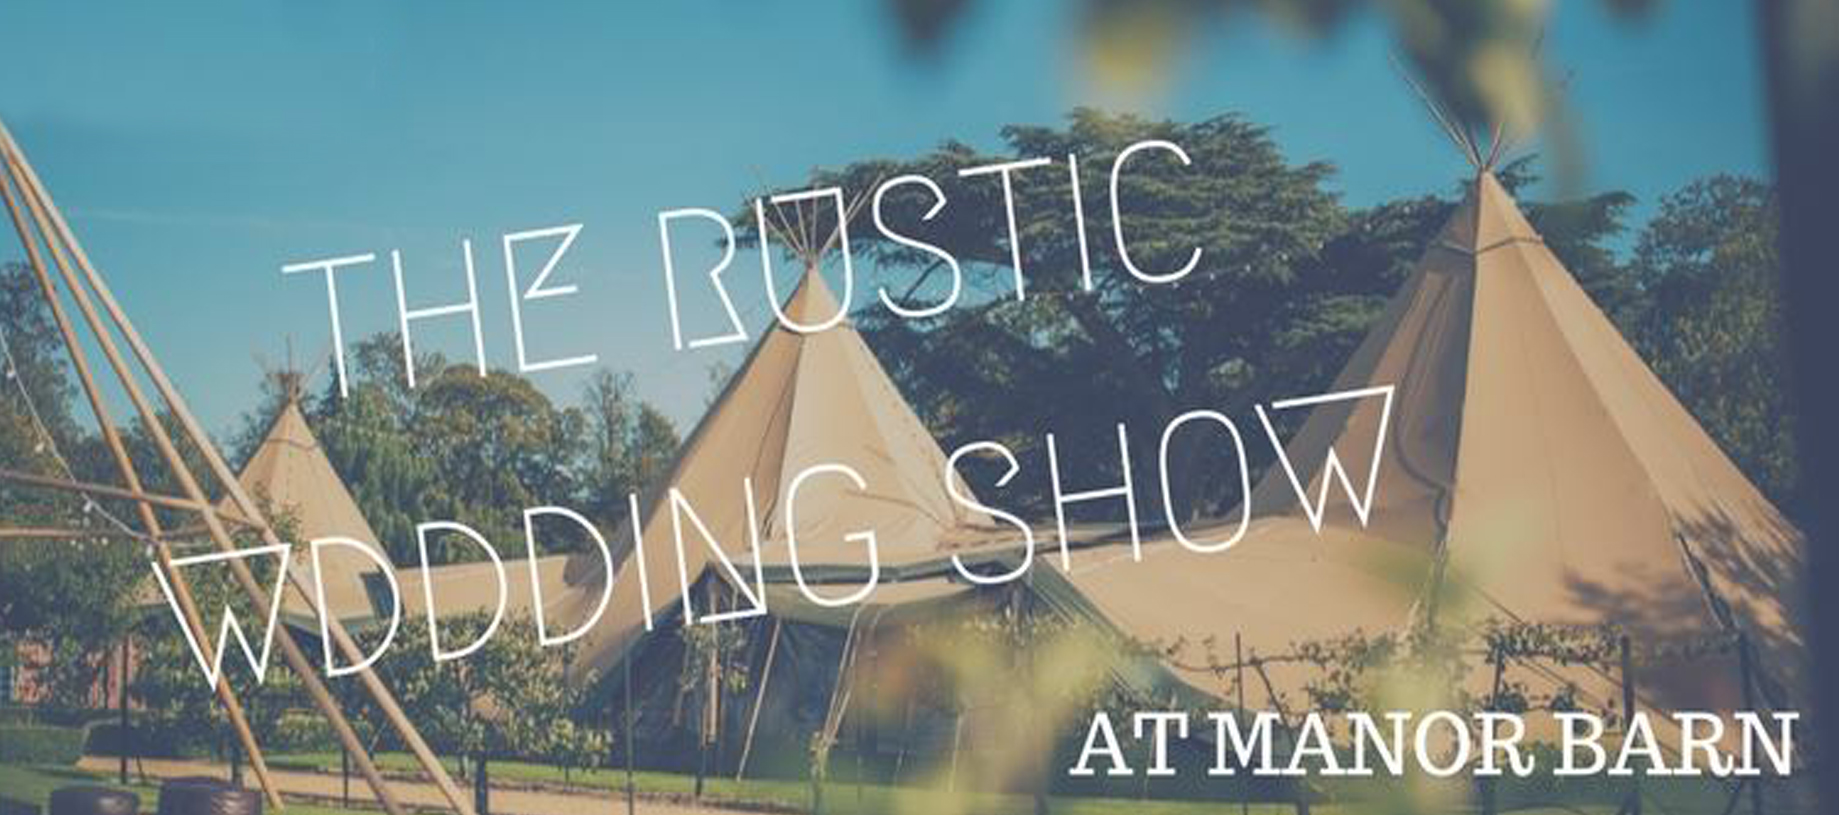 The Rustic wedding show. - 22nd April '18 - Manor Barn, Cambridge.